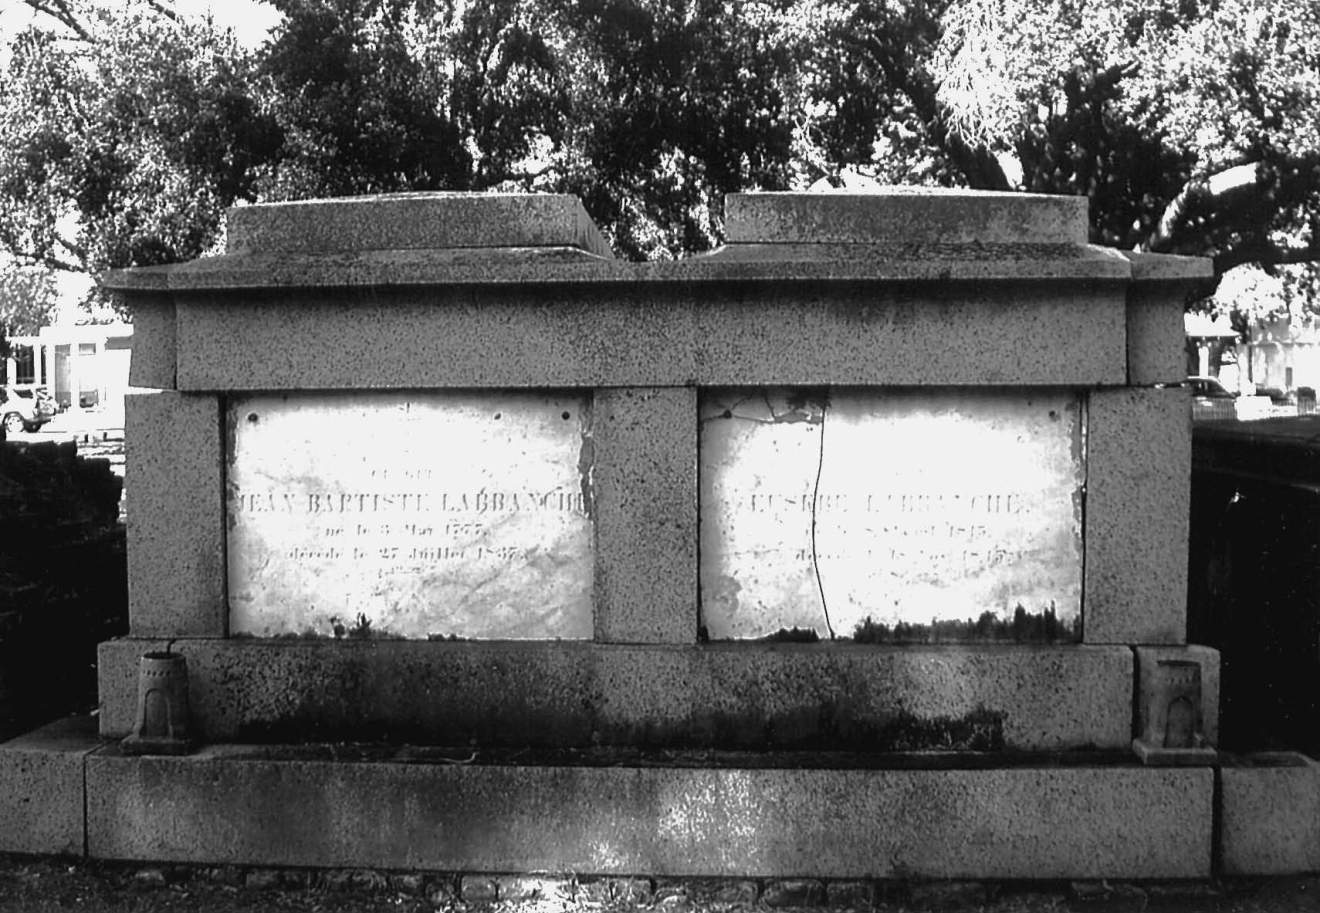 Gravesite of Jean Baptist LaBranche and Eusebe LaBranche